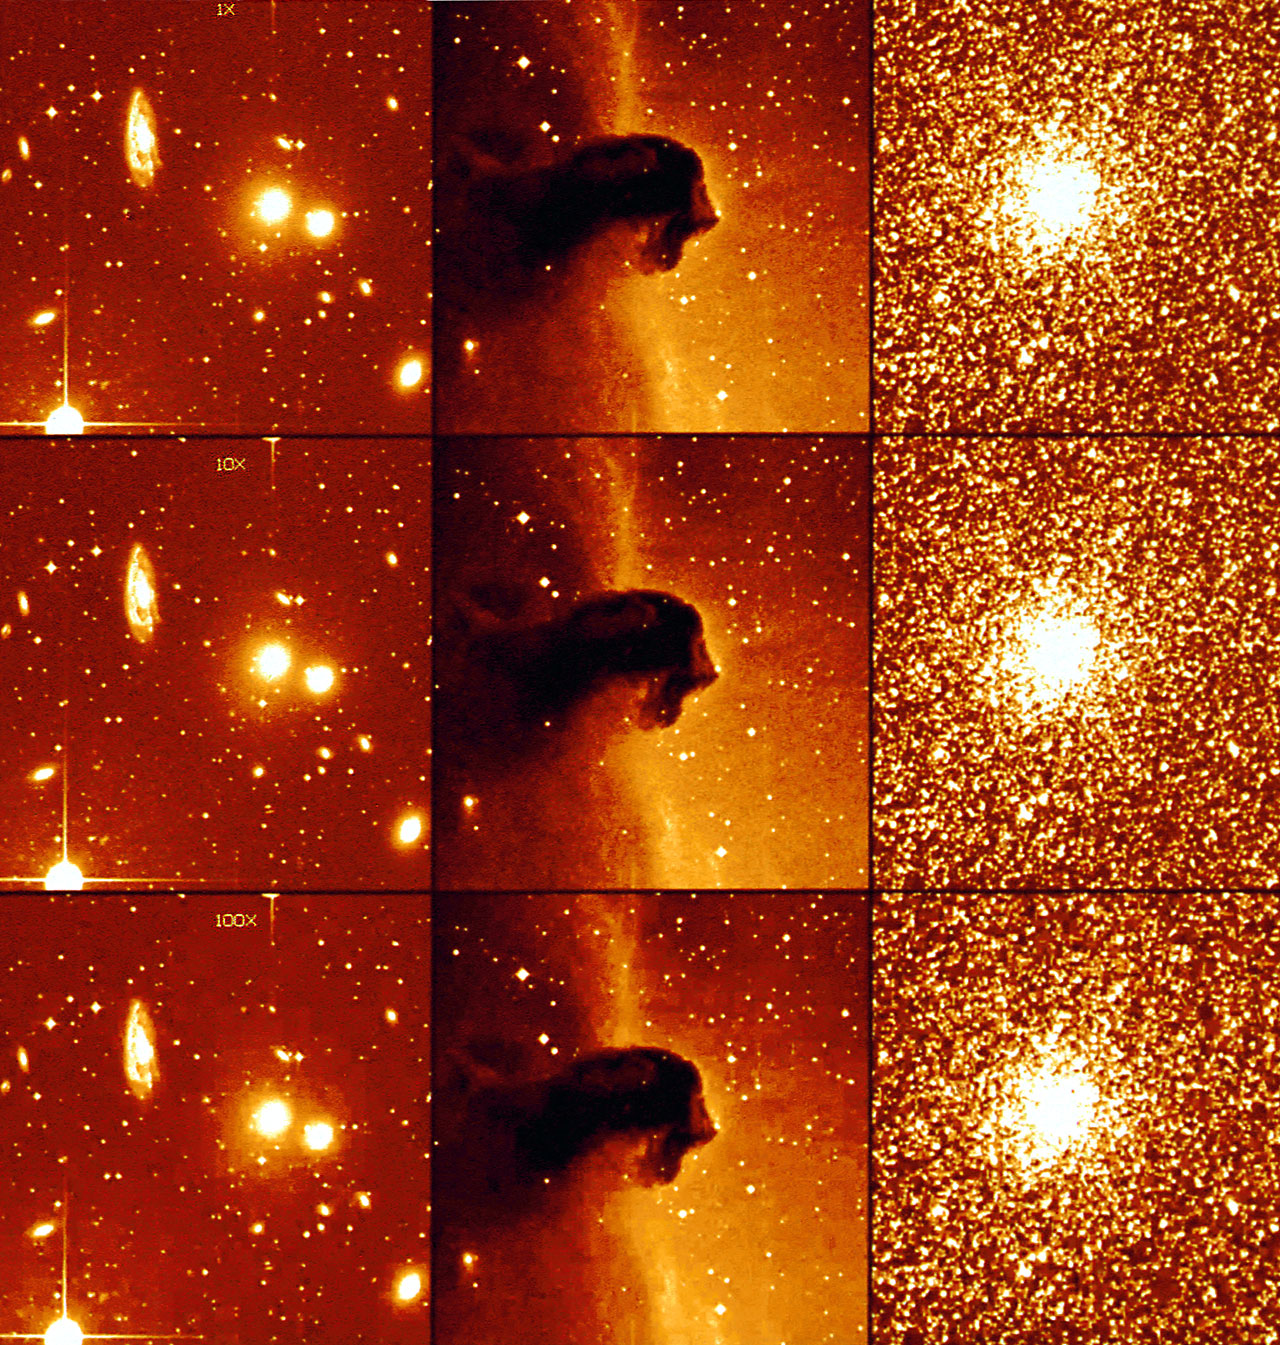 DSS Sample Images